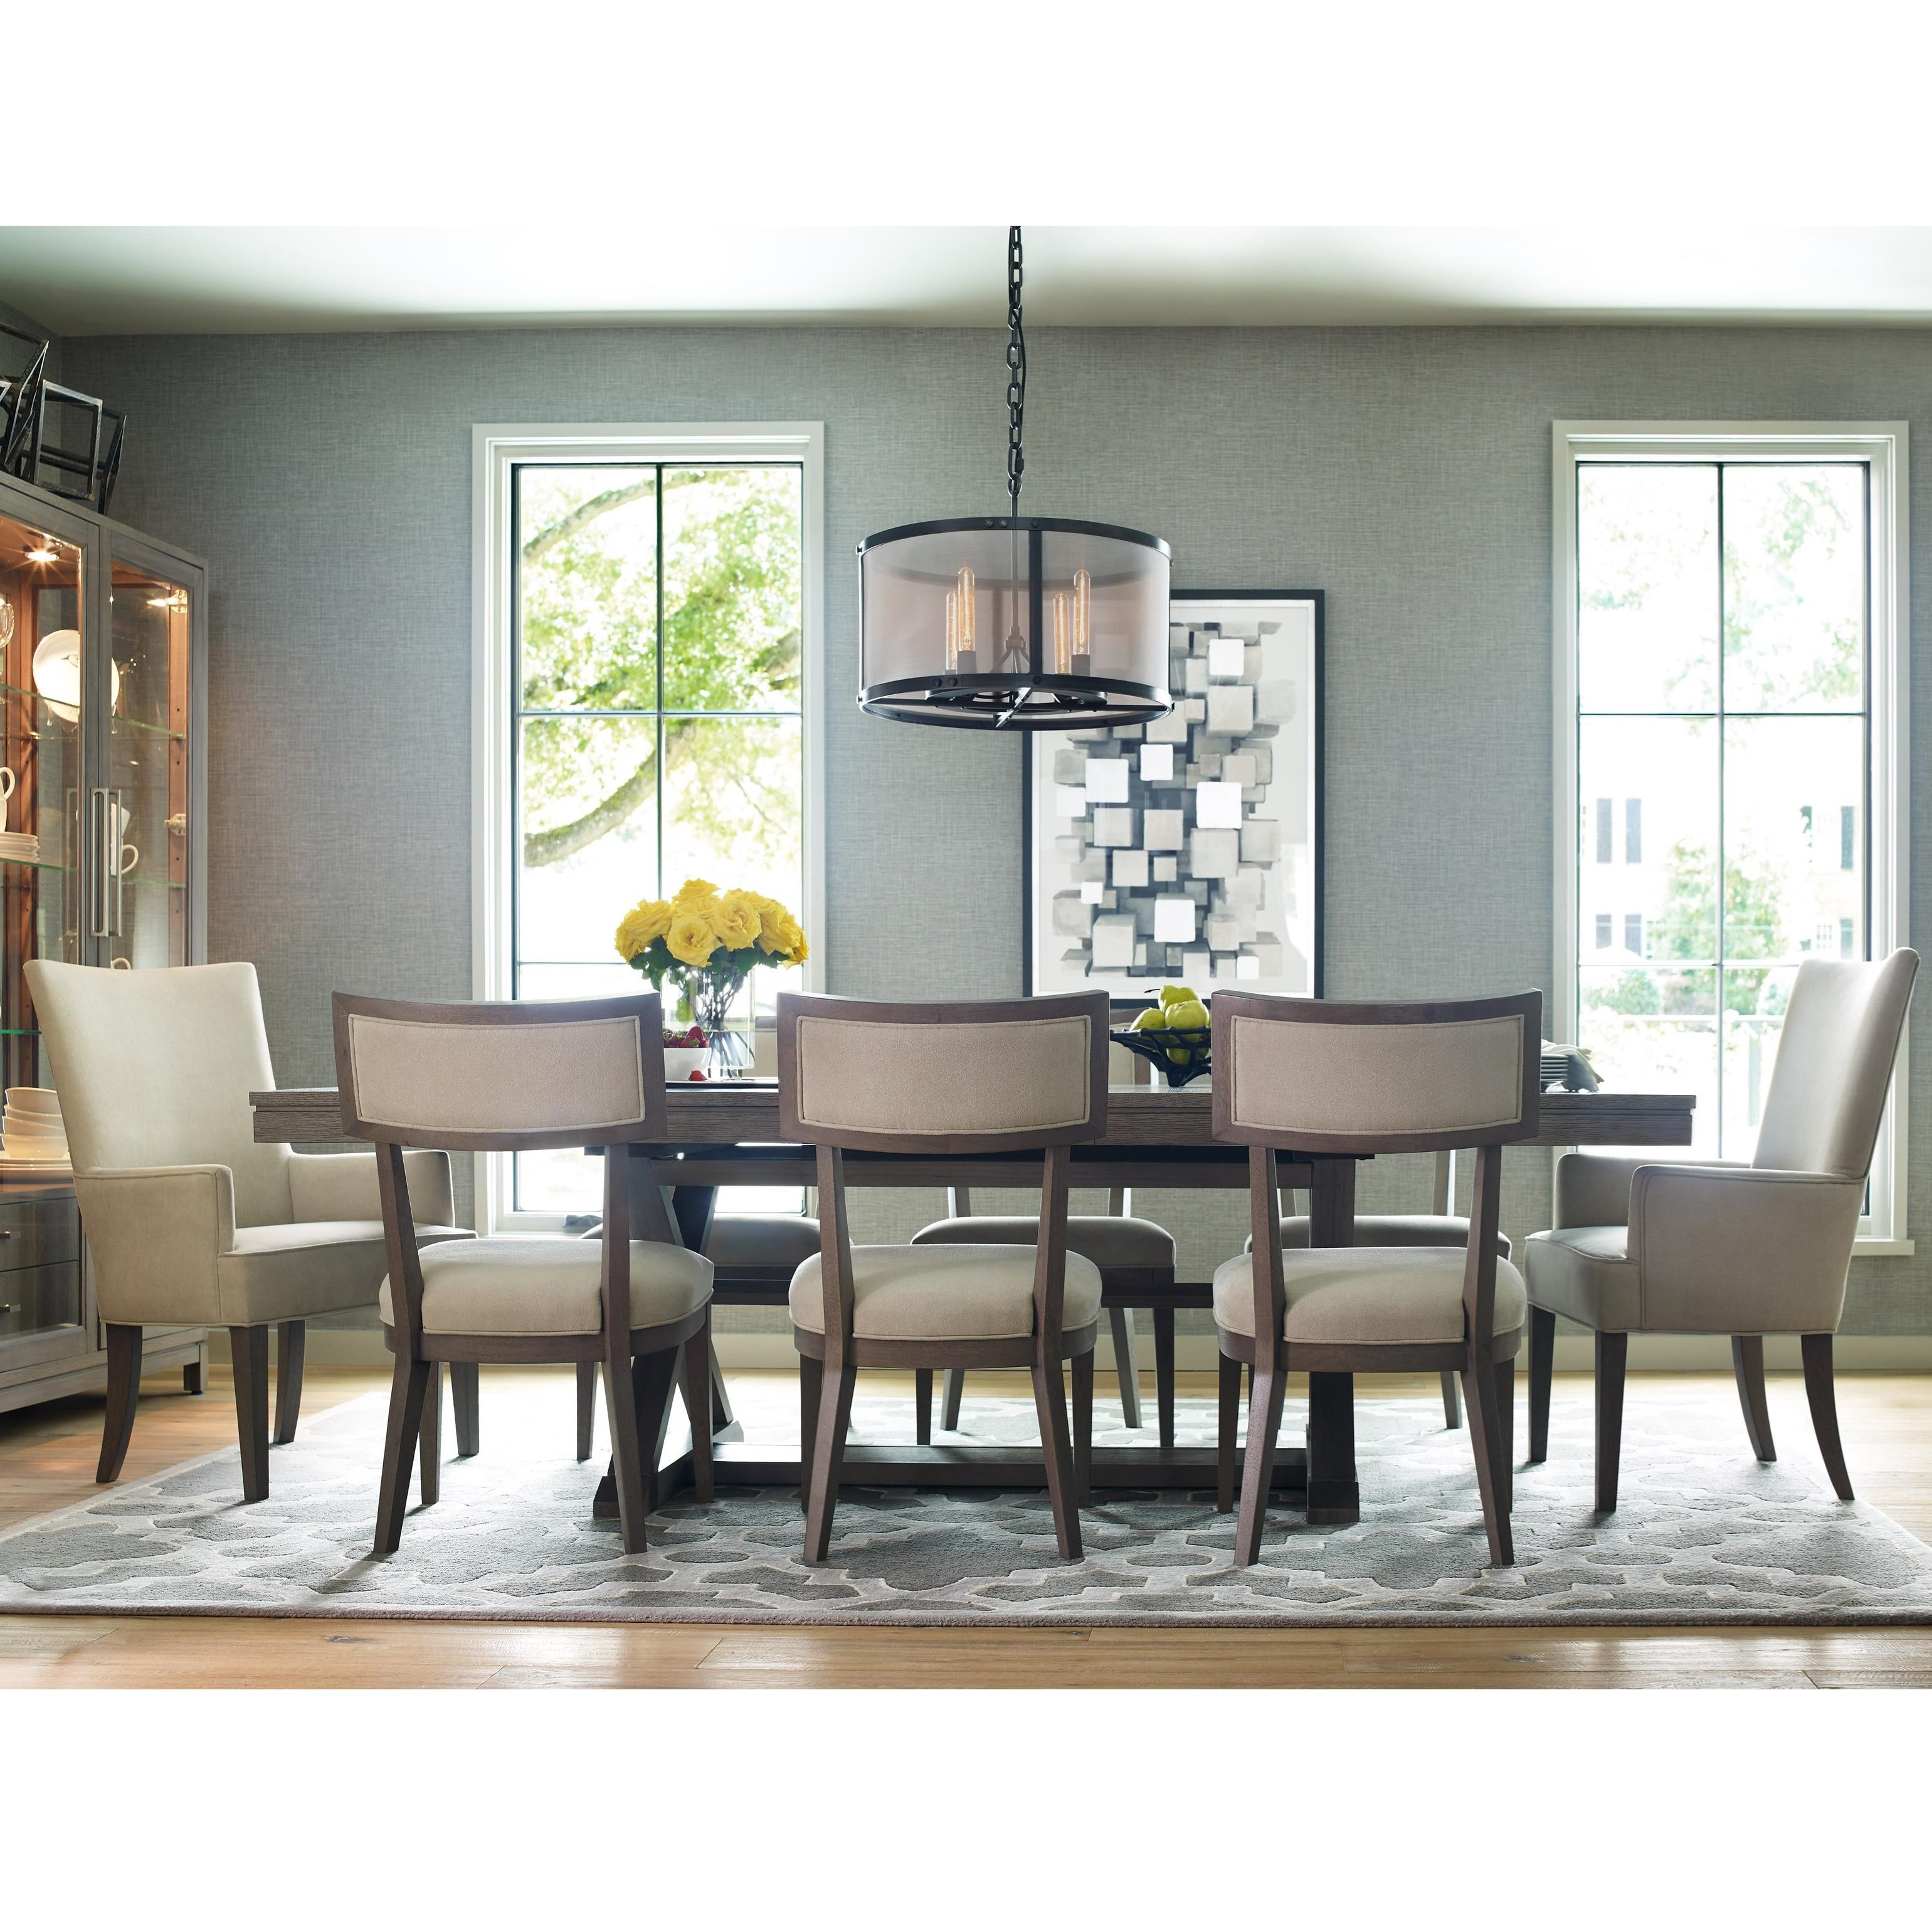 Highline 9 Piece Dining Set by Rachael Ray Home by Legacy Classic at Baer's Furniture